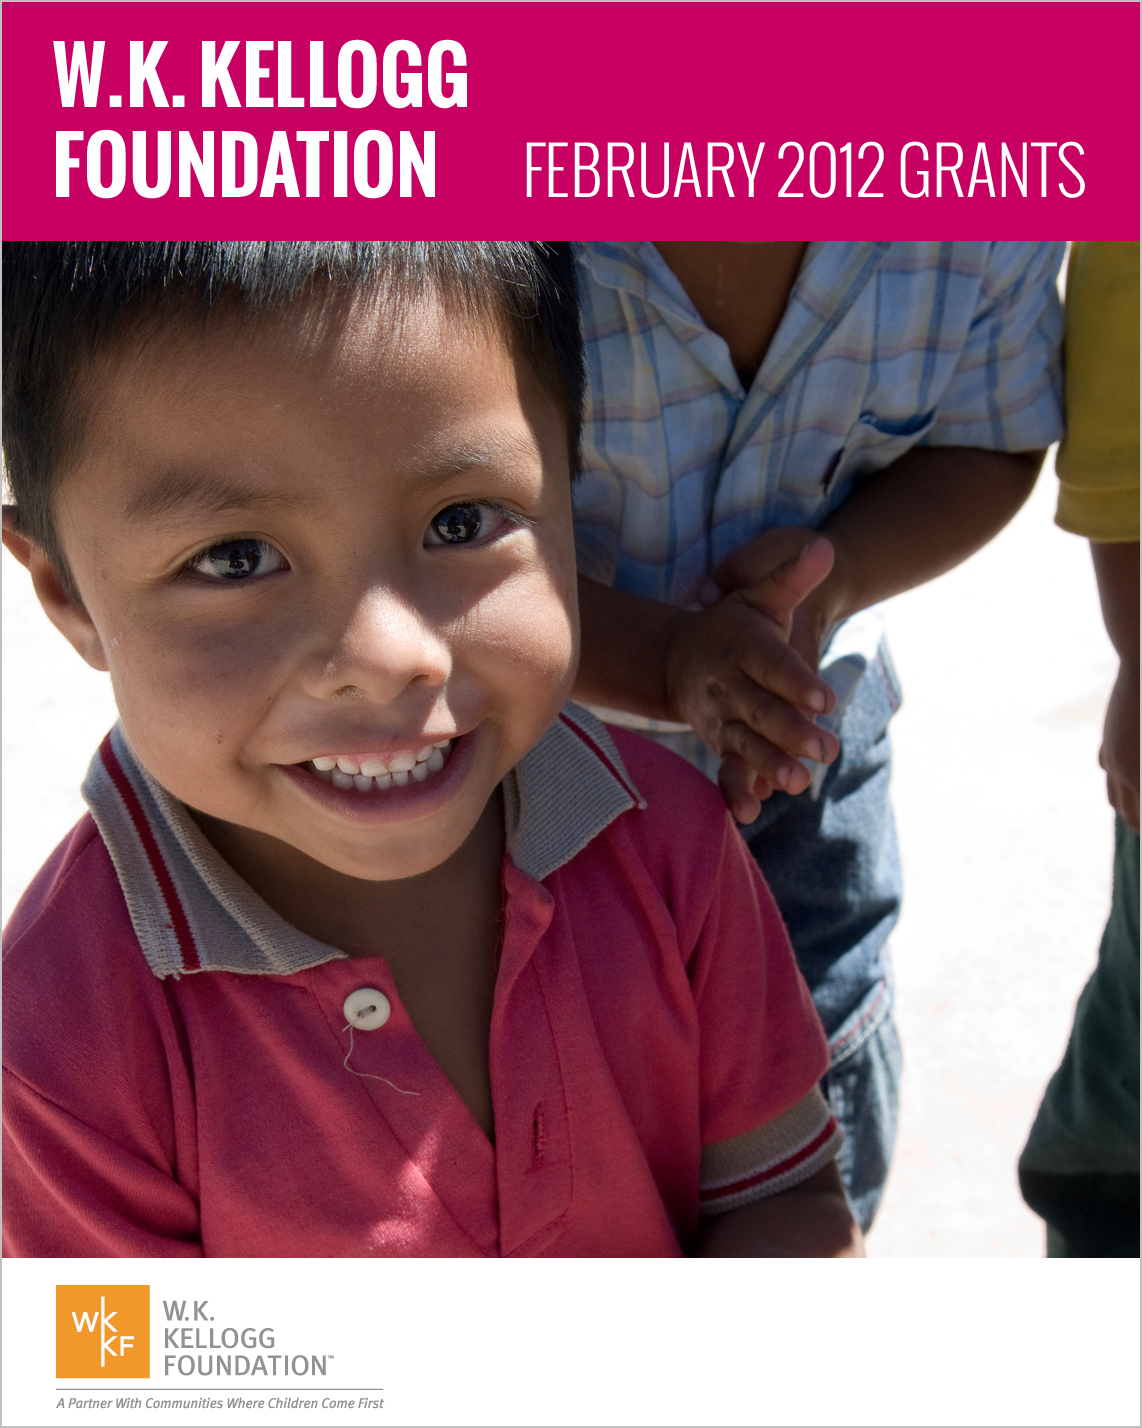 W.K. Kellogg Foundation Grants - February 2012